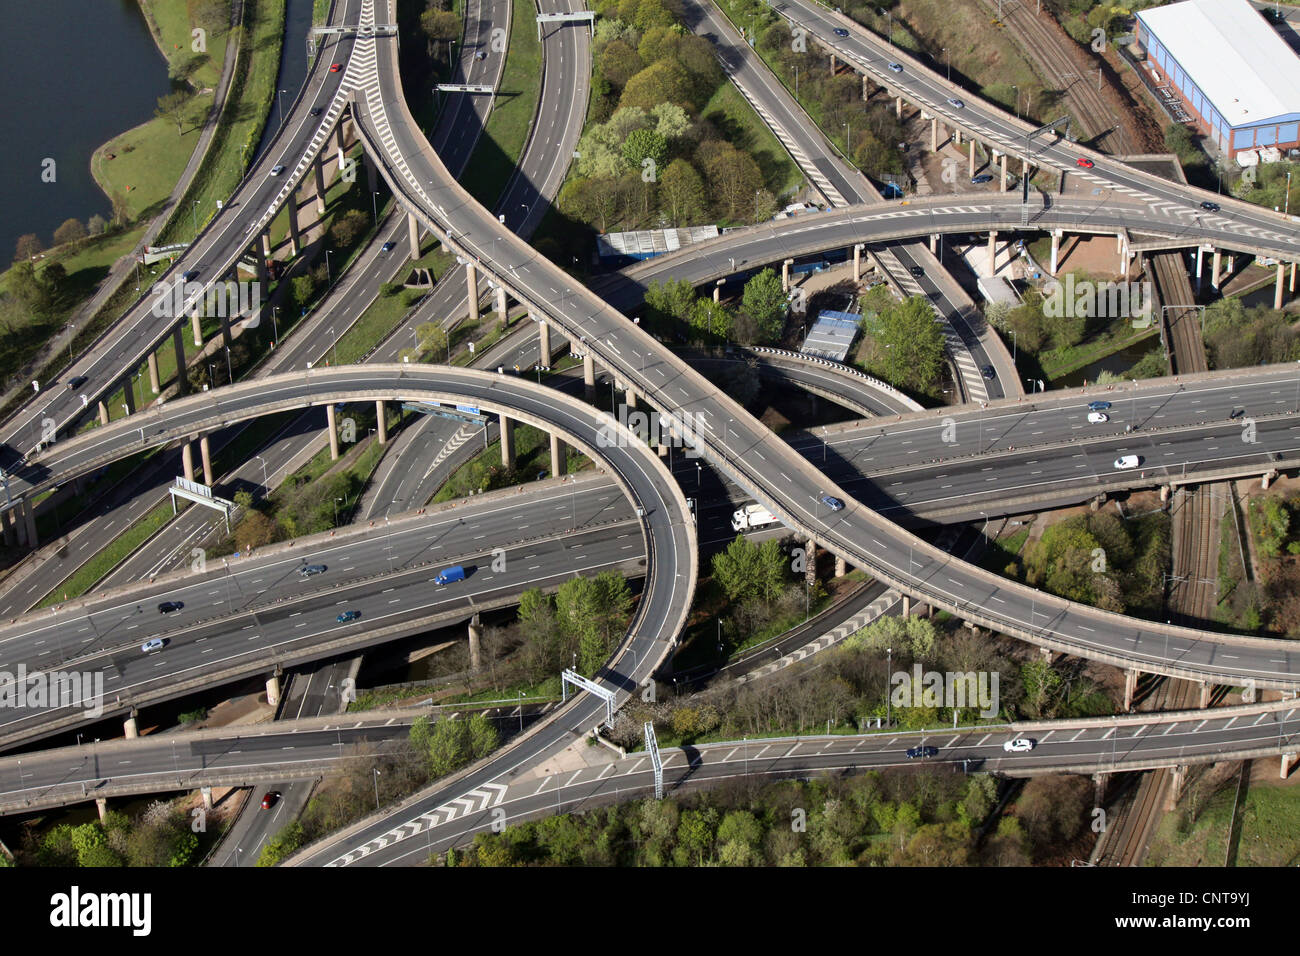 aerial view of Spaghetti Junction, Graveley Hill, Birmingham - Stock Image